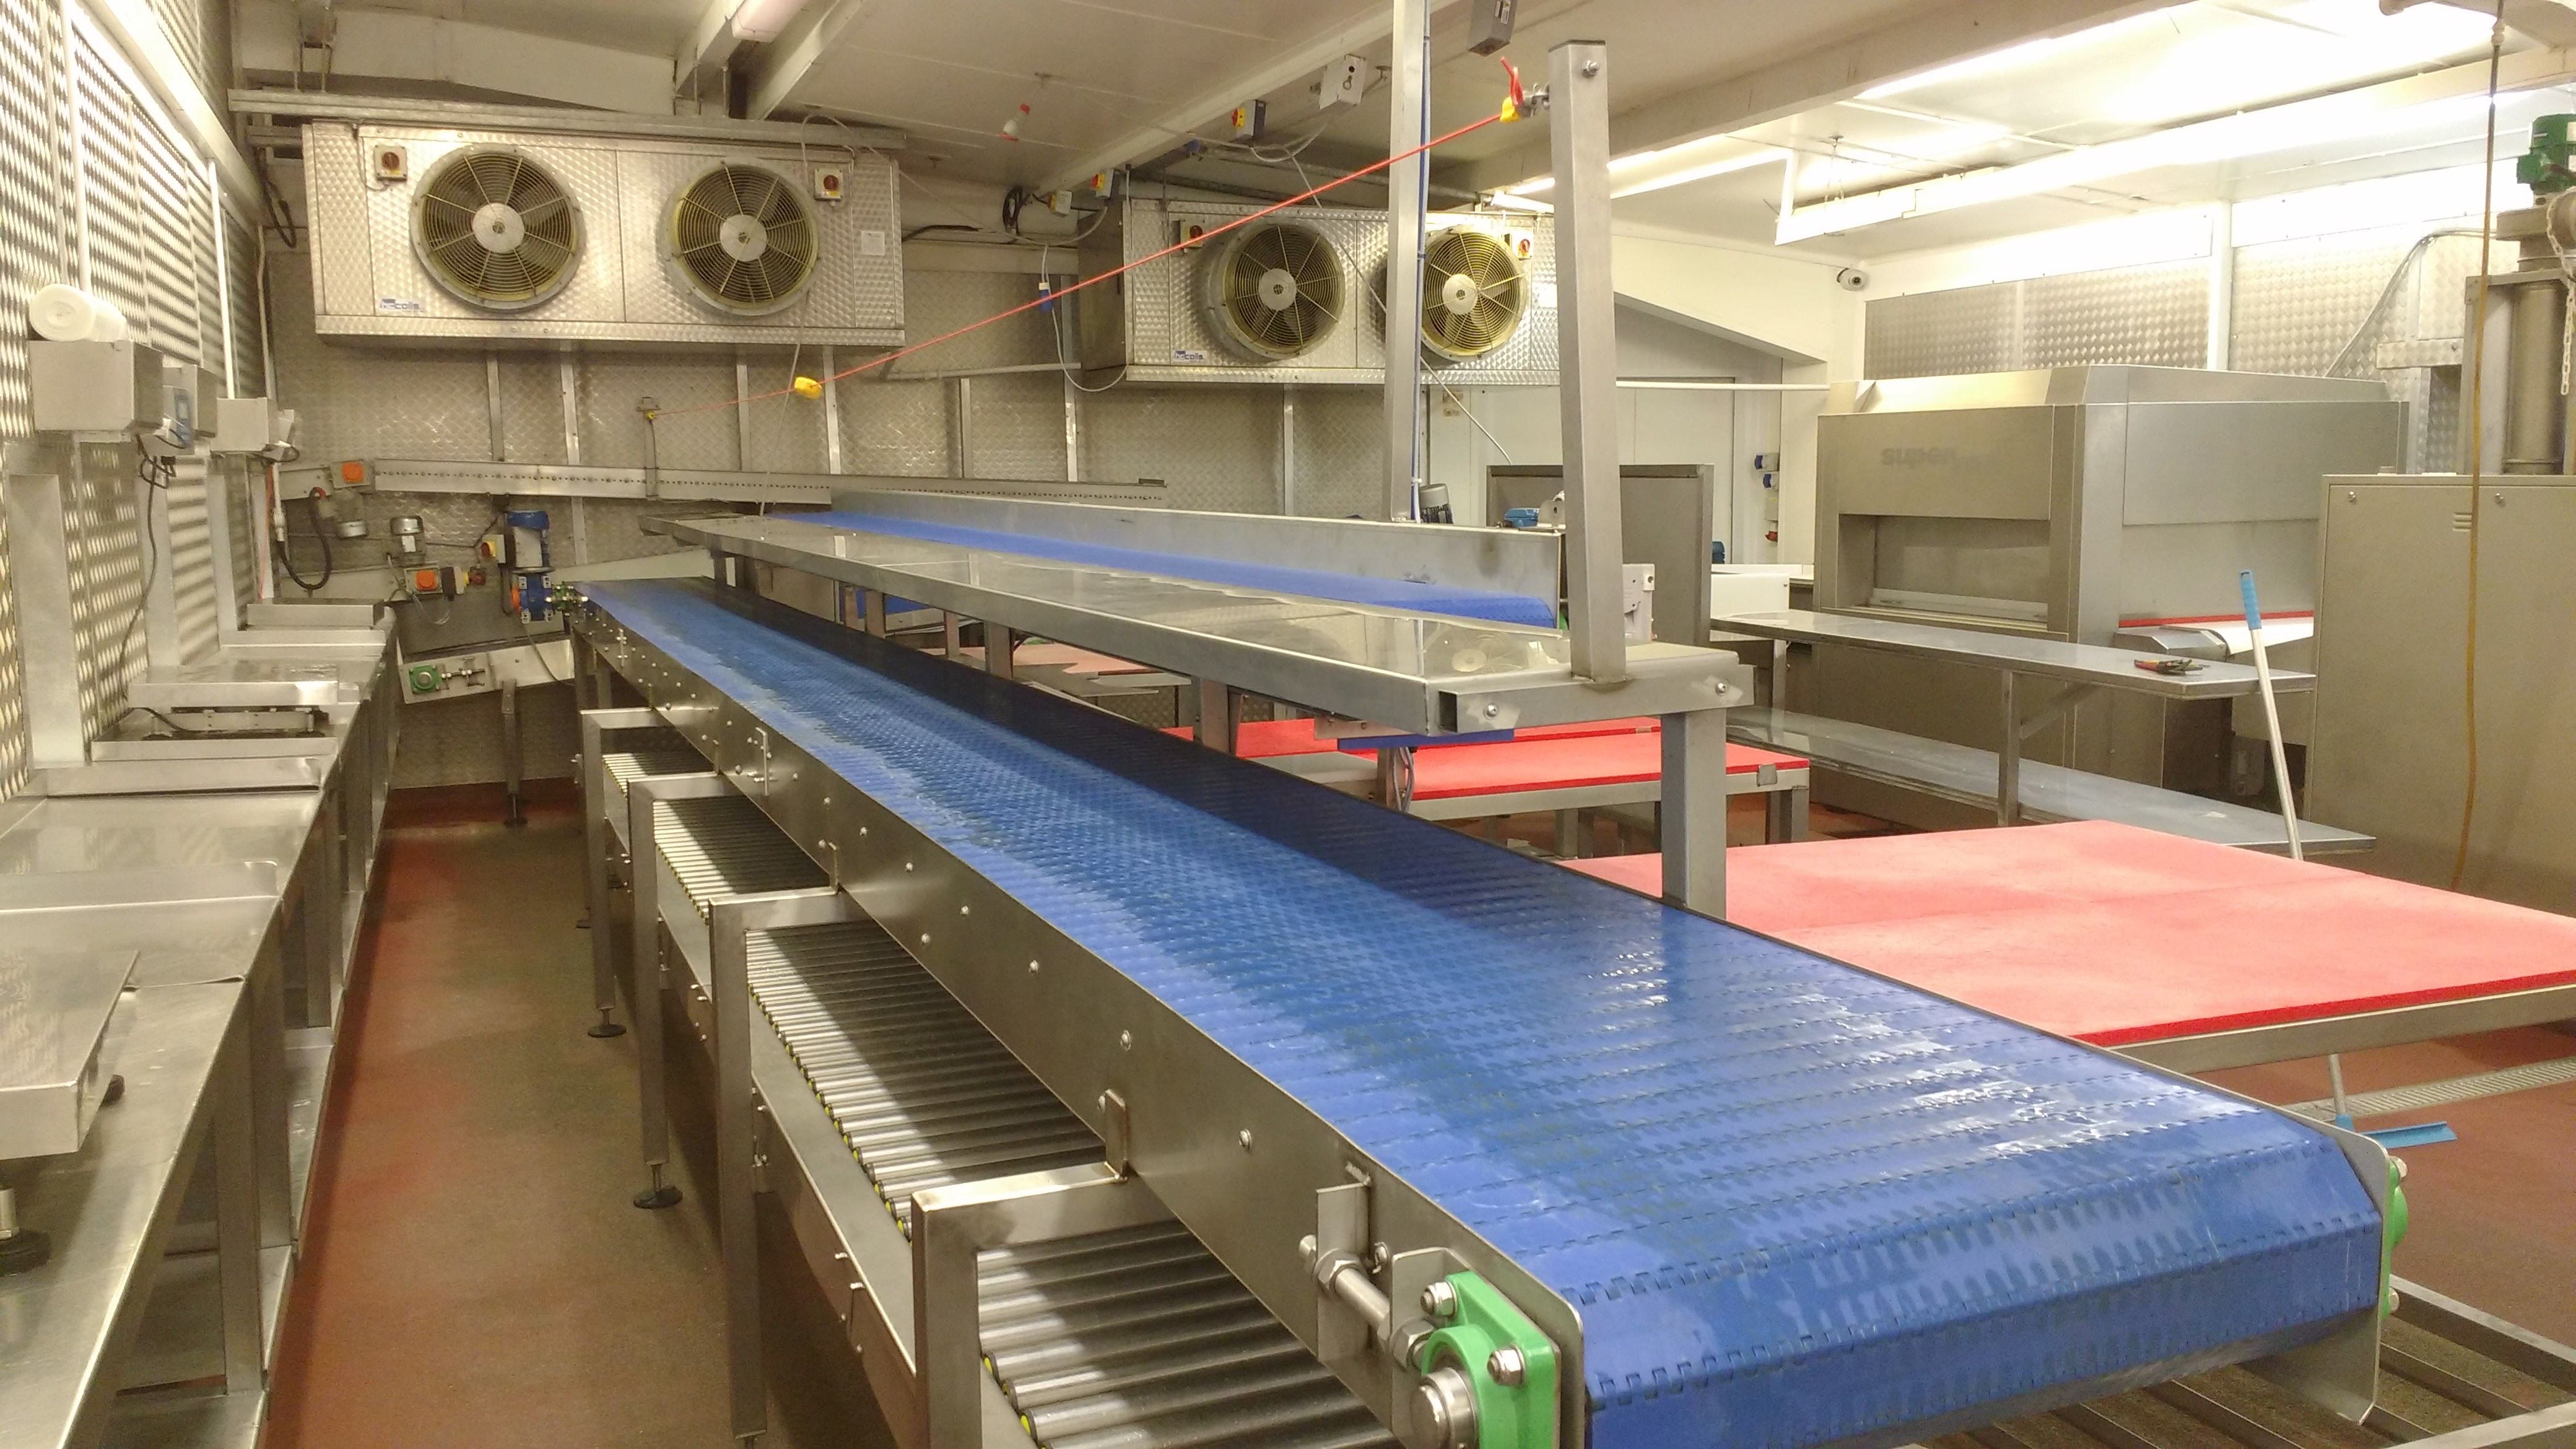 Stainless steel conveyors and work stations